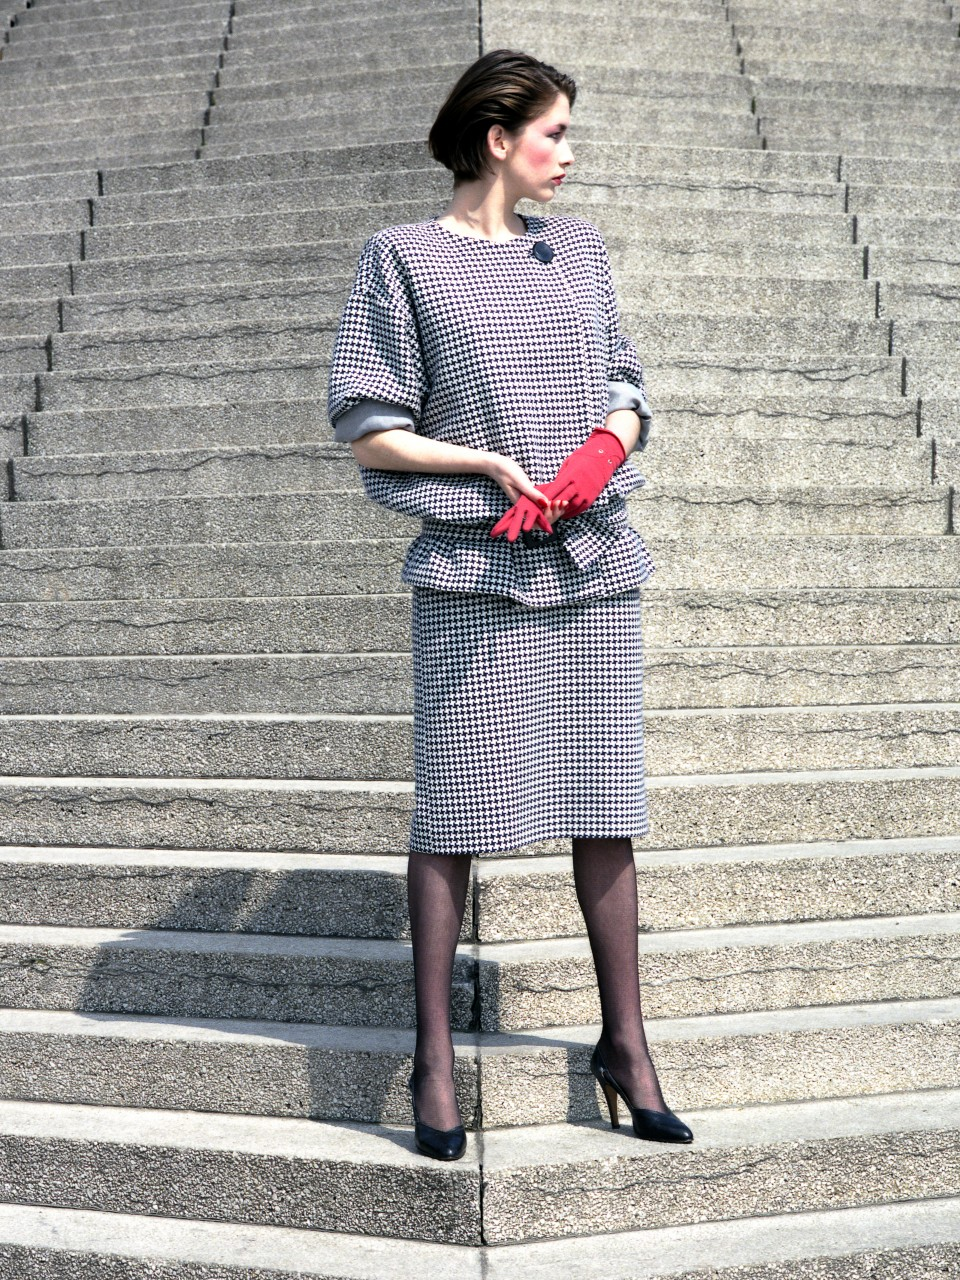 Uta Rath, Sybille-Model, Ost-Berlin, 1984 - Bild 3